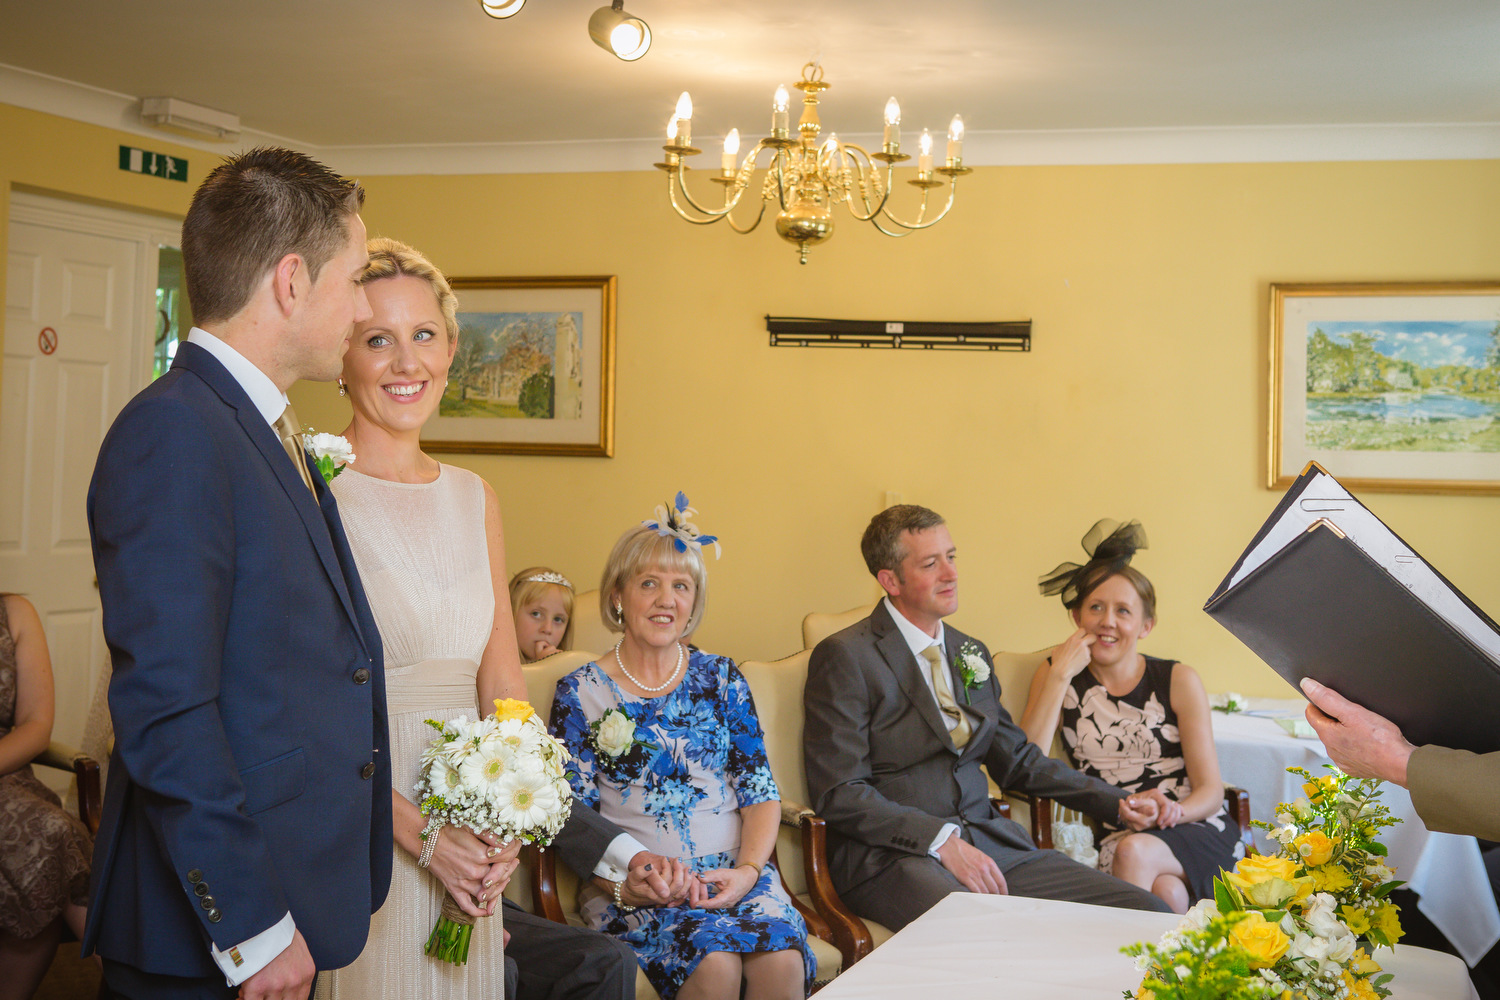 charnwood_weddings_barnsdale_lodge_rutland_dave_j71ane.JPG